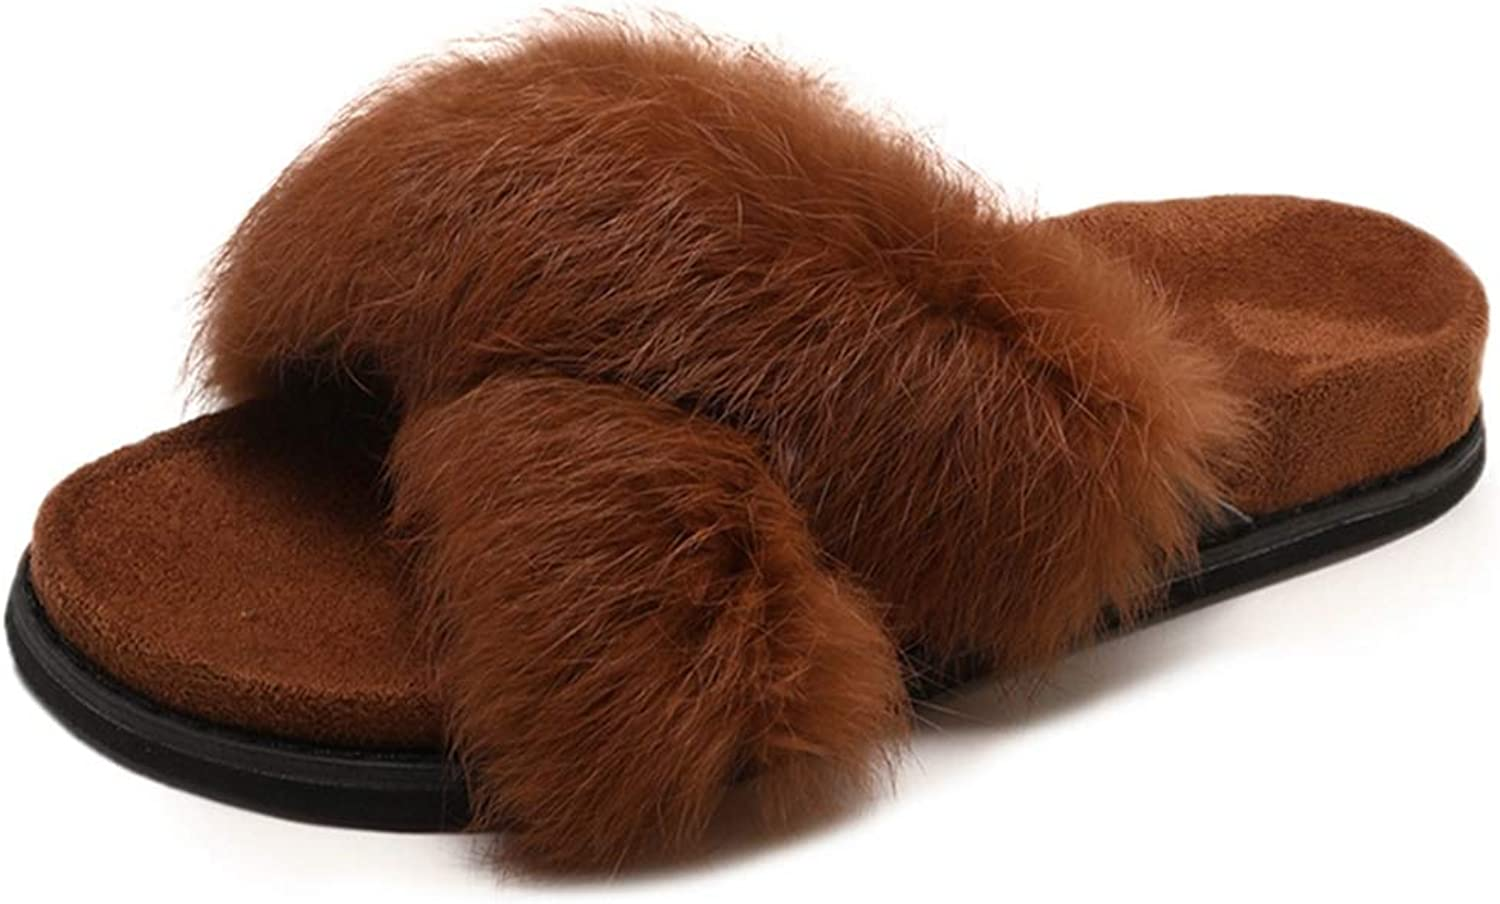 FAY WATERS Women's Fluffy Faux Fur Flat Slides Autumn Winter Warm Outdoor Indoor Floor Home Slippers